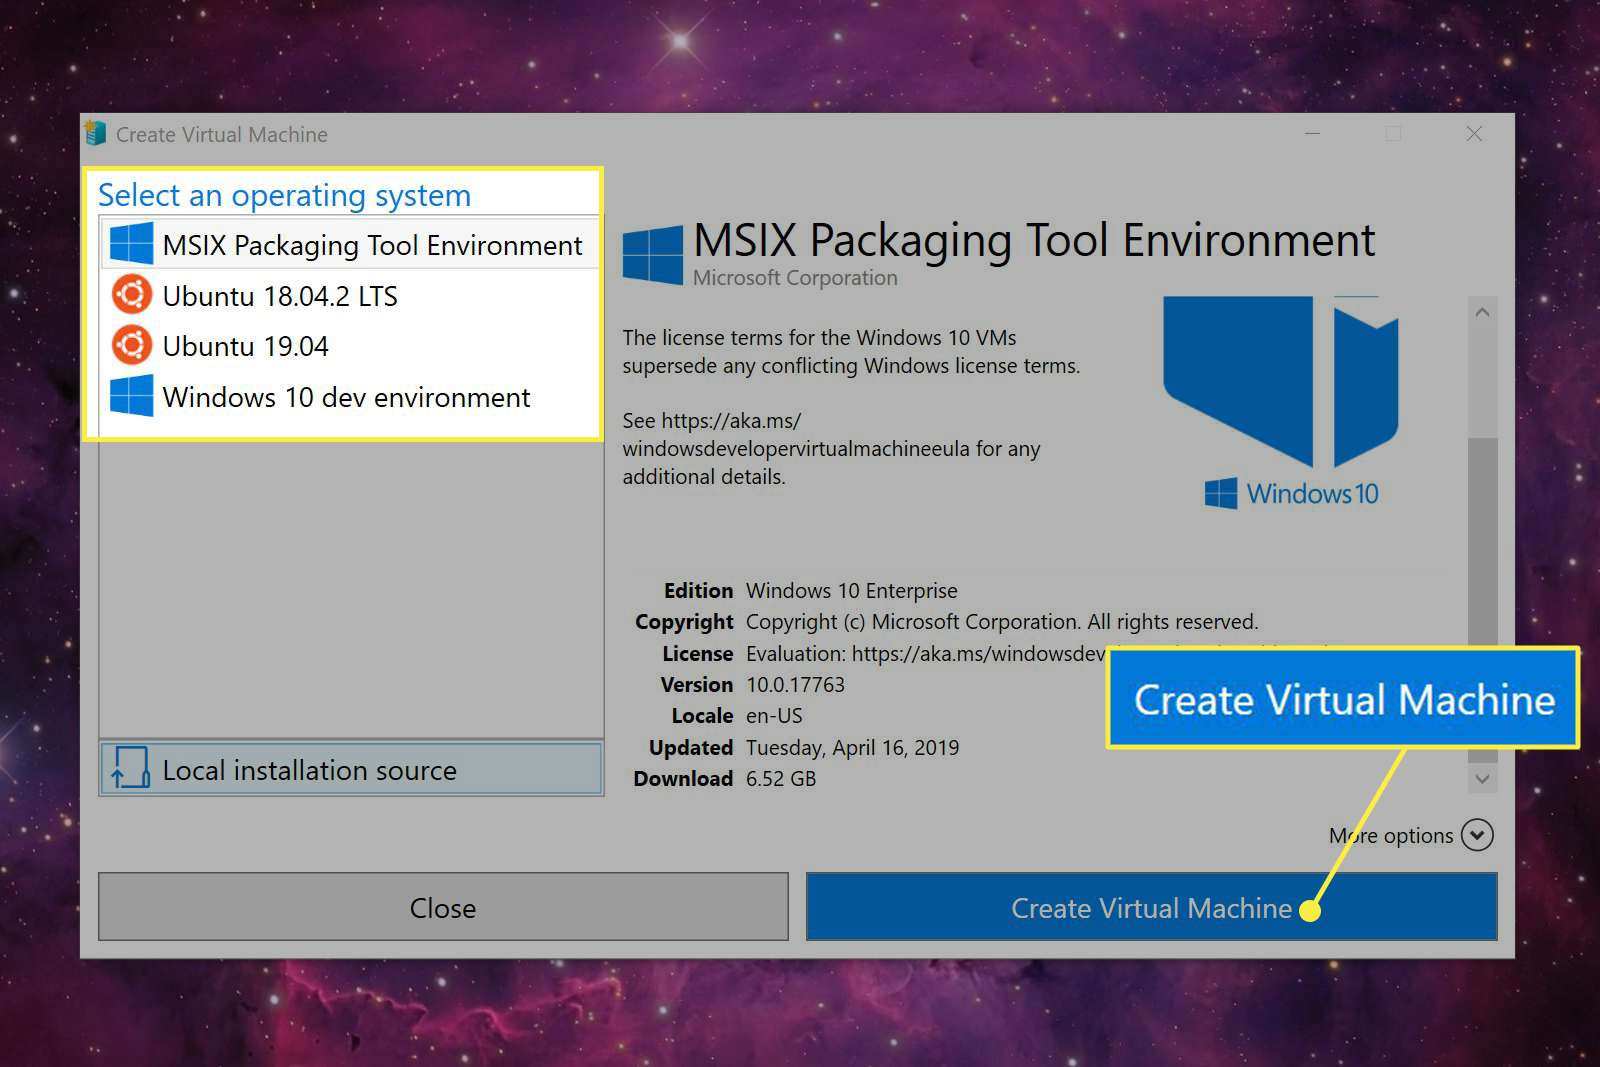 OS options and the Create Virtual Machine button